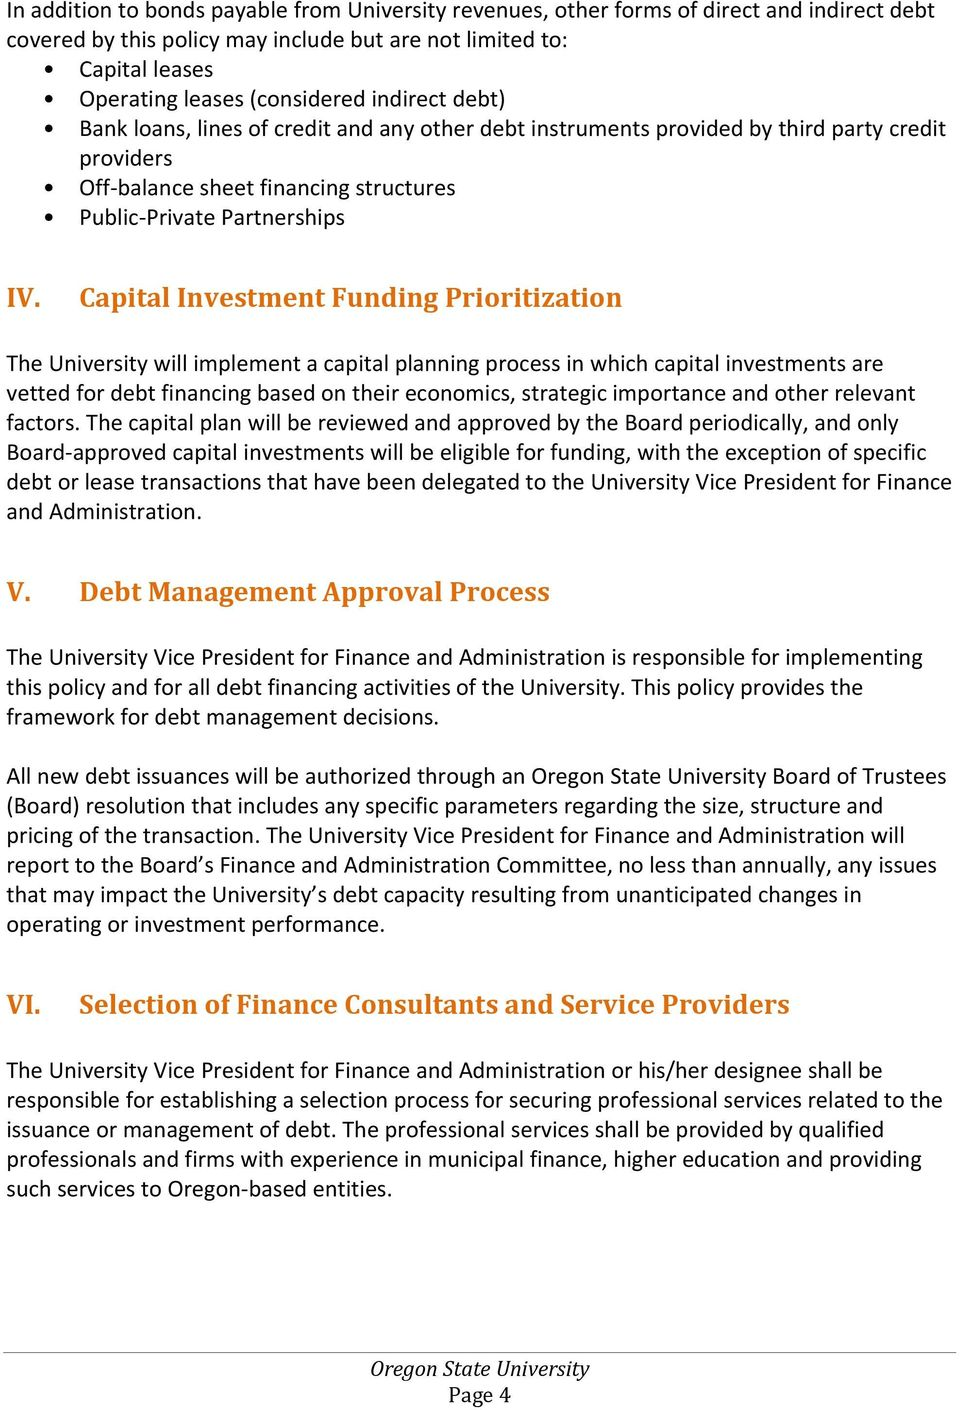 Capital Investment Funding Prioritization The University will implement a capital planning process in which capital investments are vetted for debt financing based on their economics, strategic